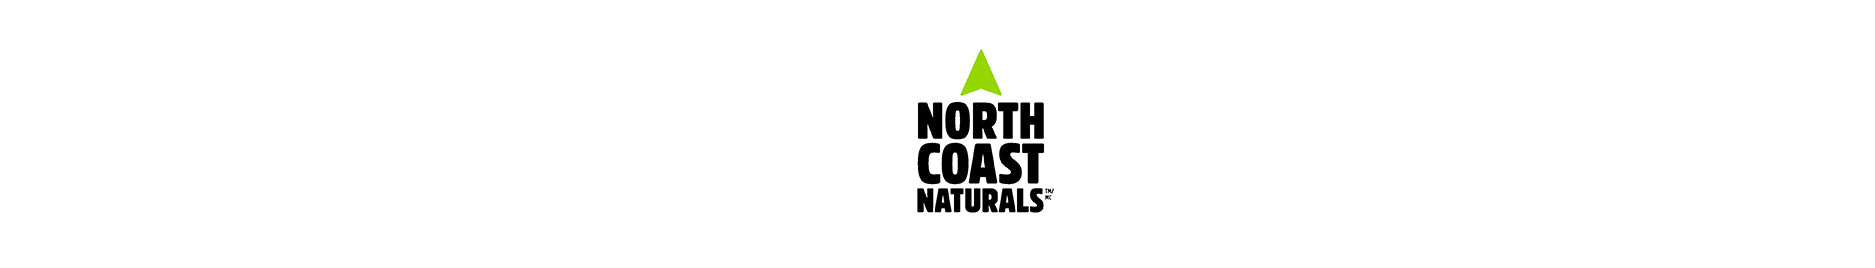 Buy North Coast Naturals Supplements Online in Canada at